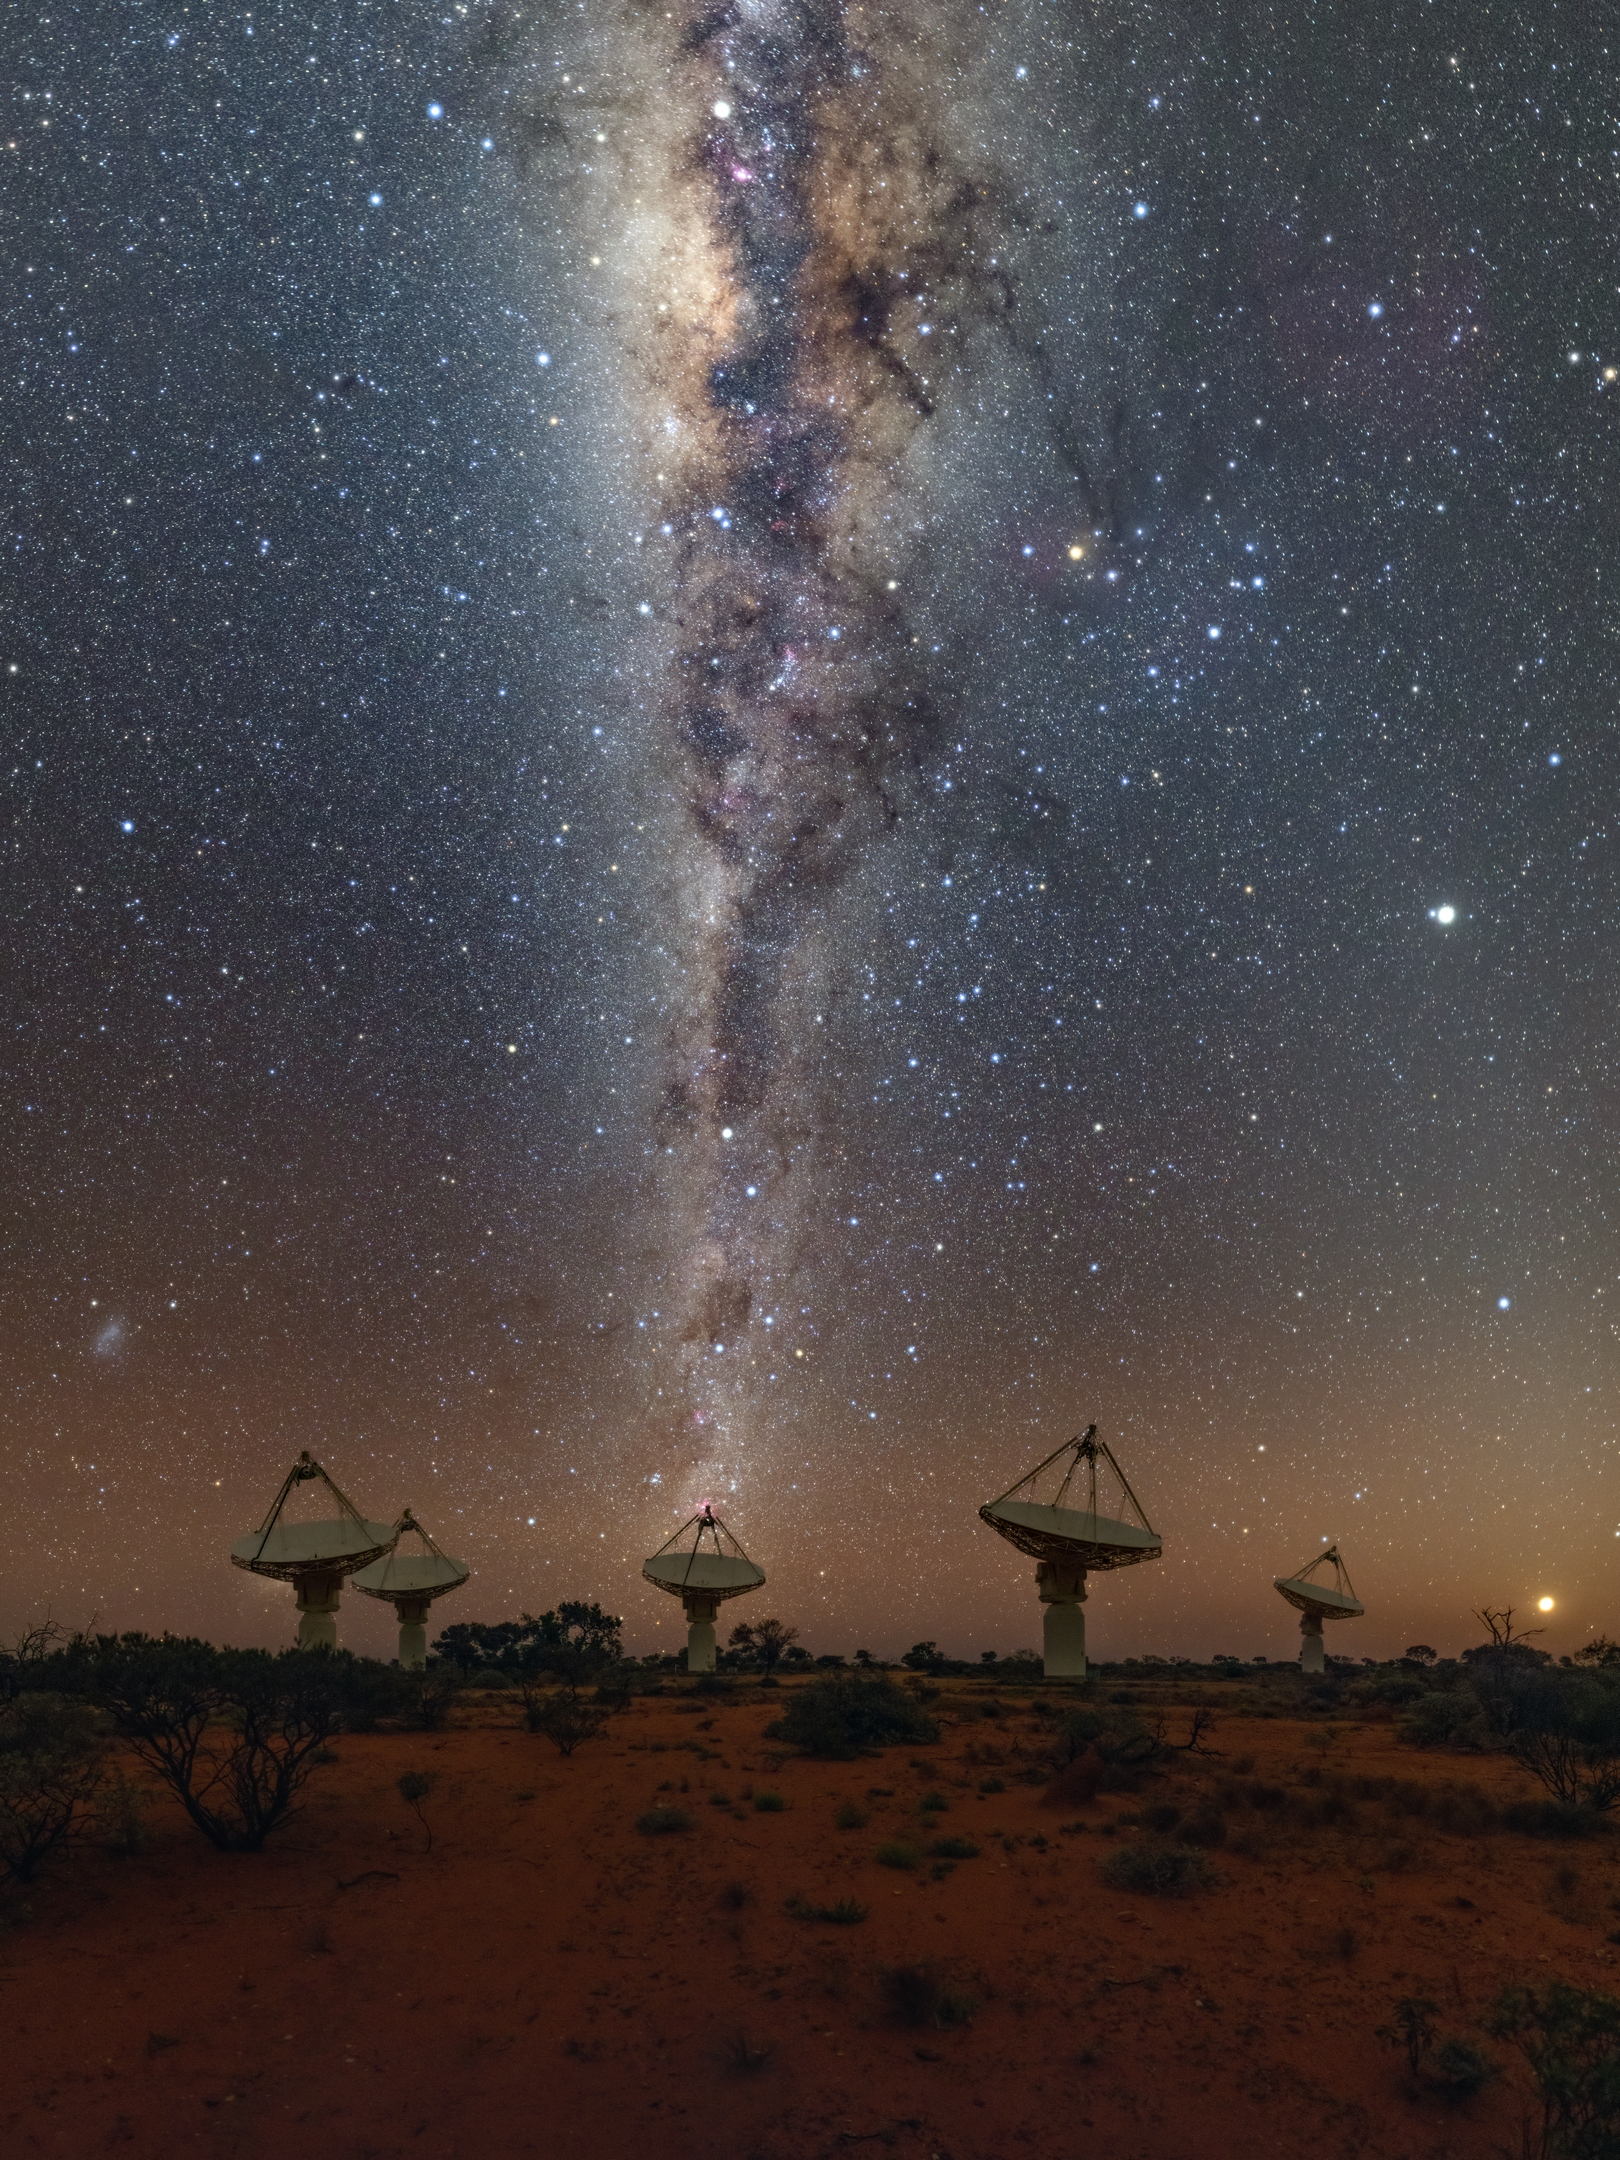 Milky Way galaxy stretches above ASKAP